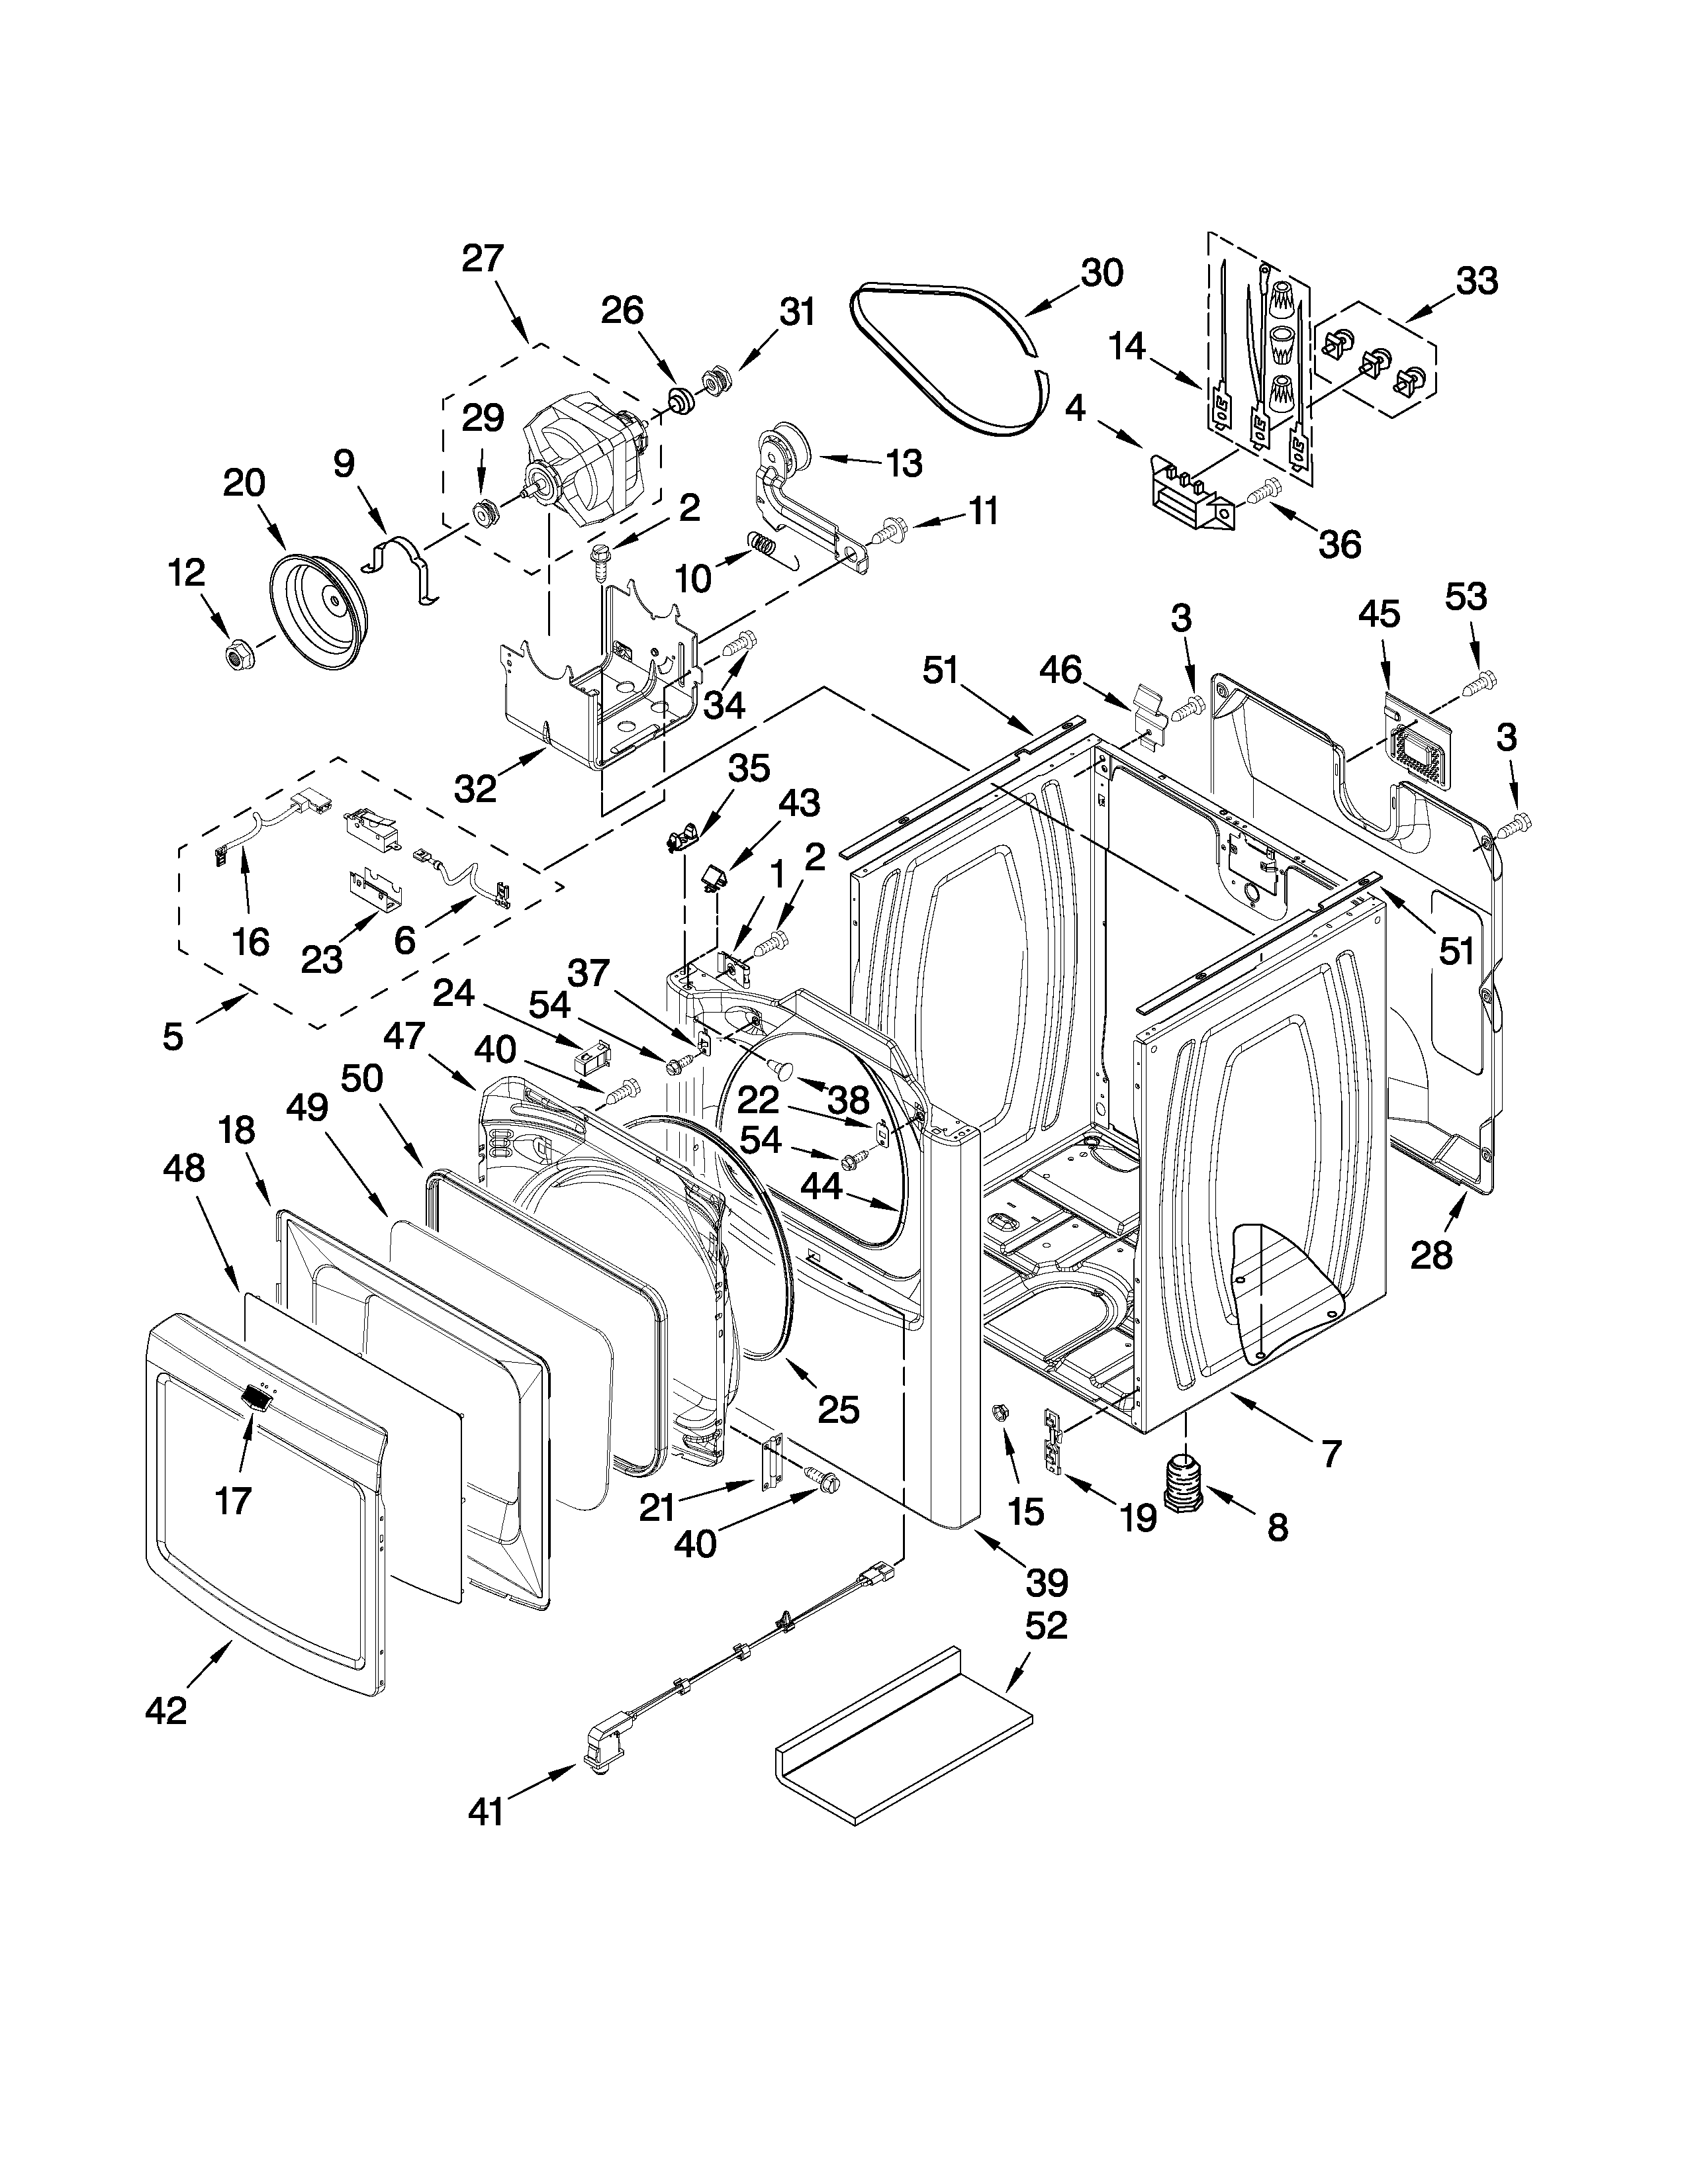 Maytag MEDB850WQ0 cabinet parts diagram